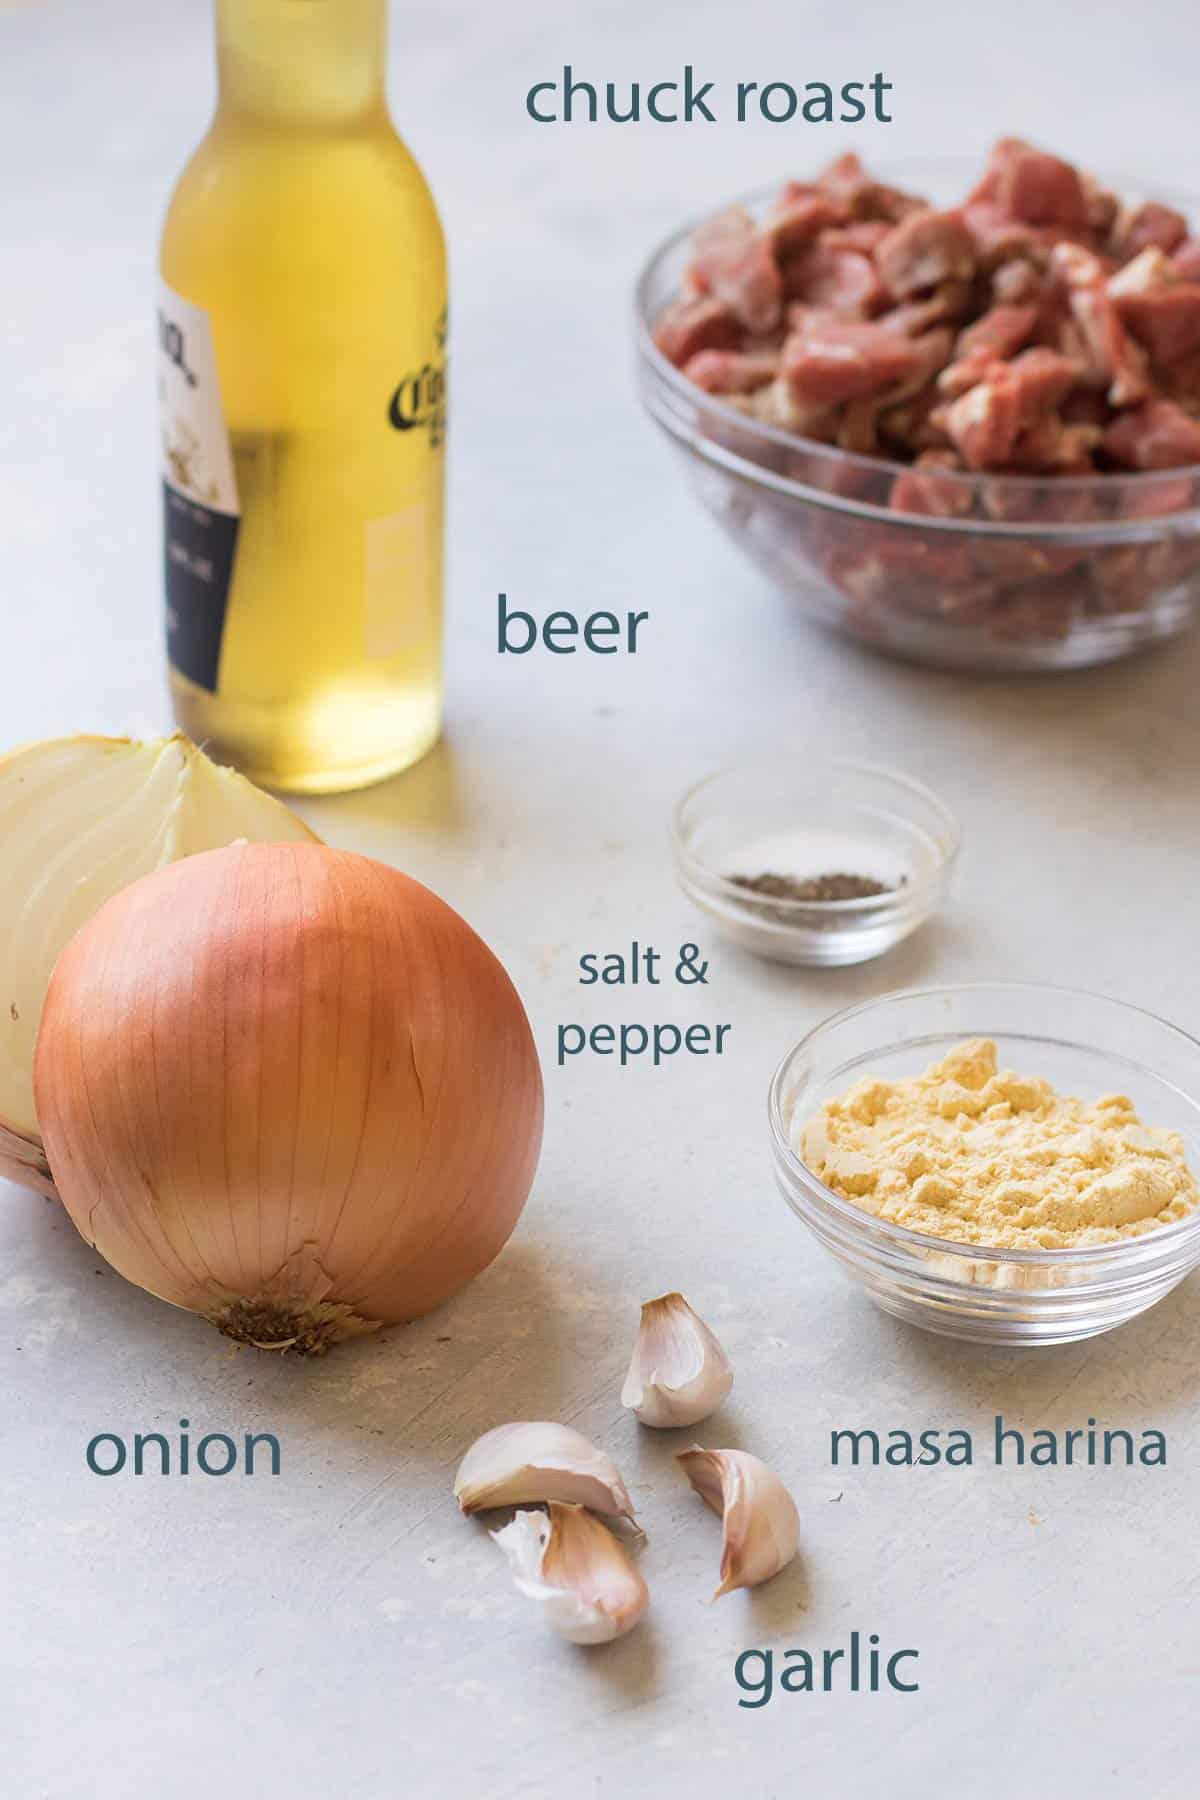 ingredients for the chili.